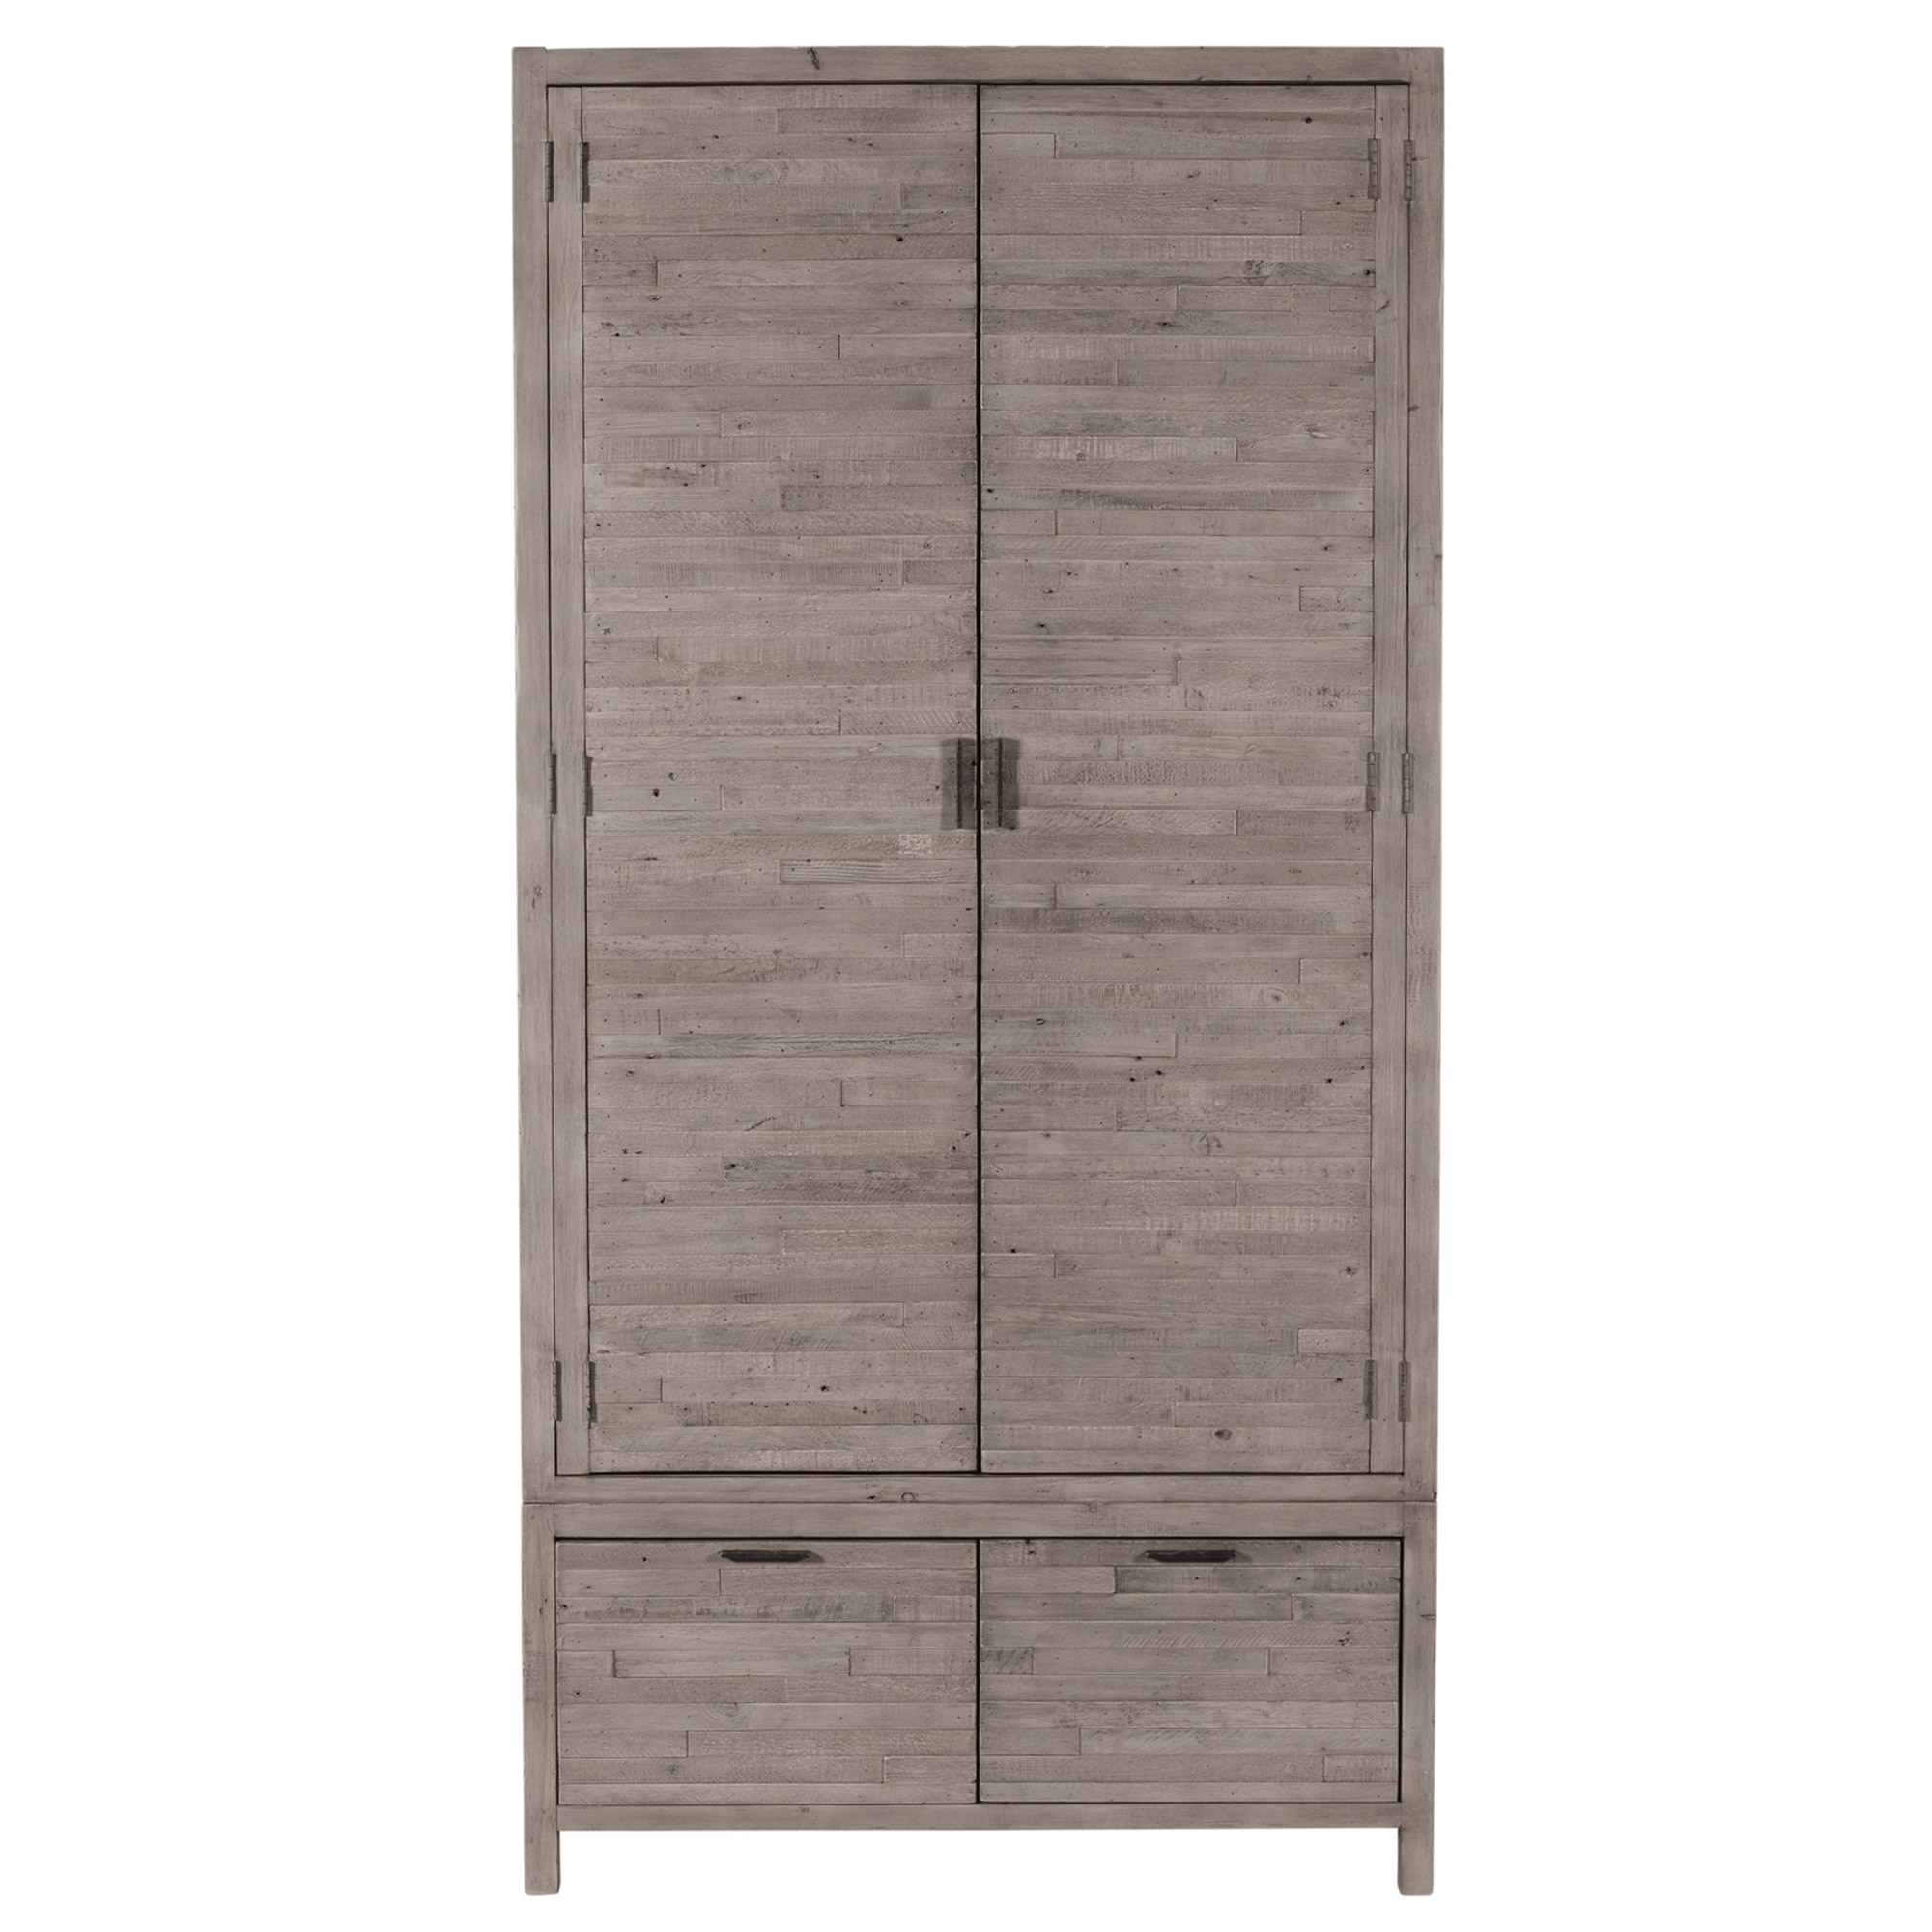 Siena Double Wardrobe